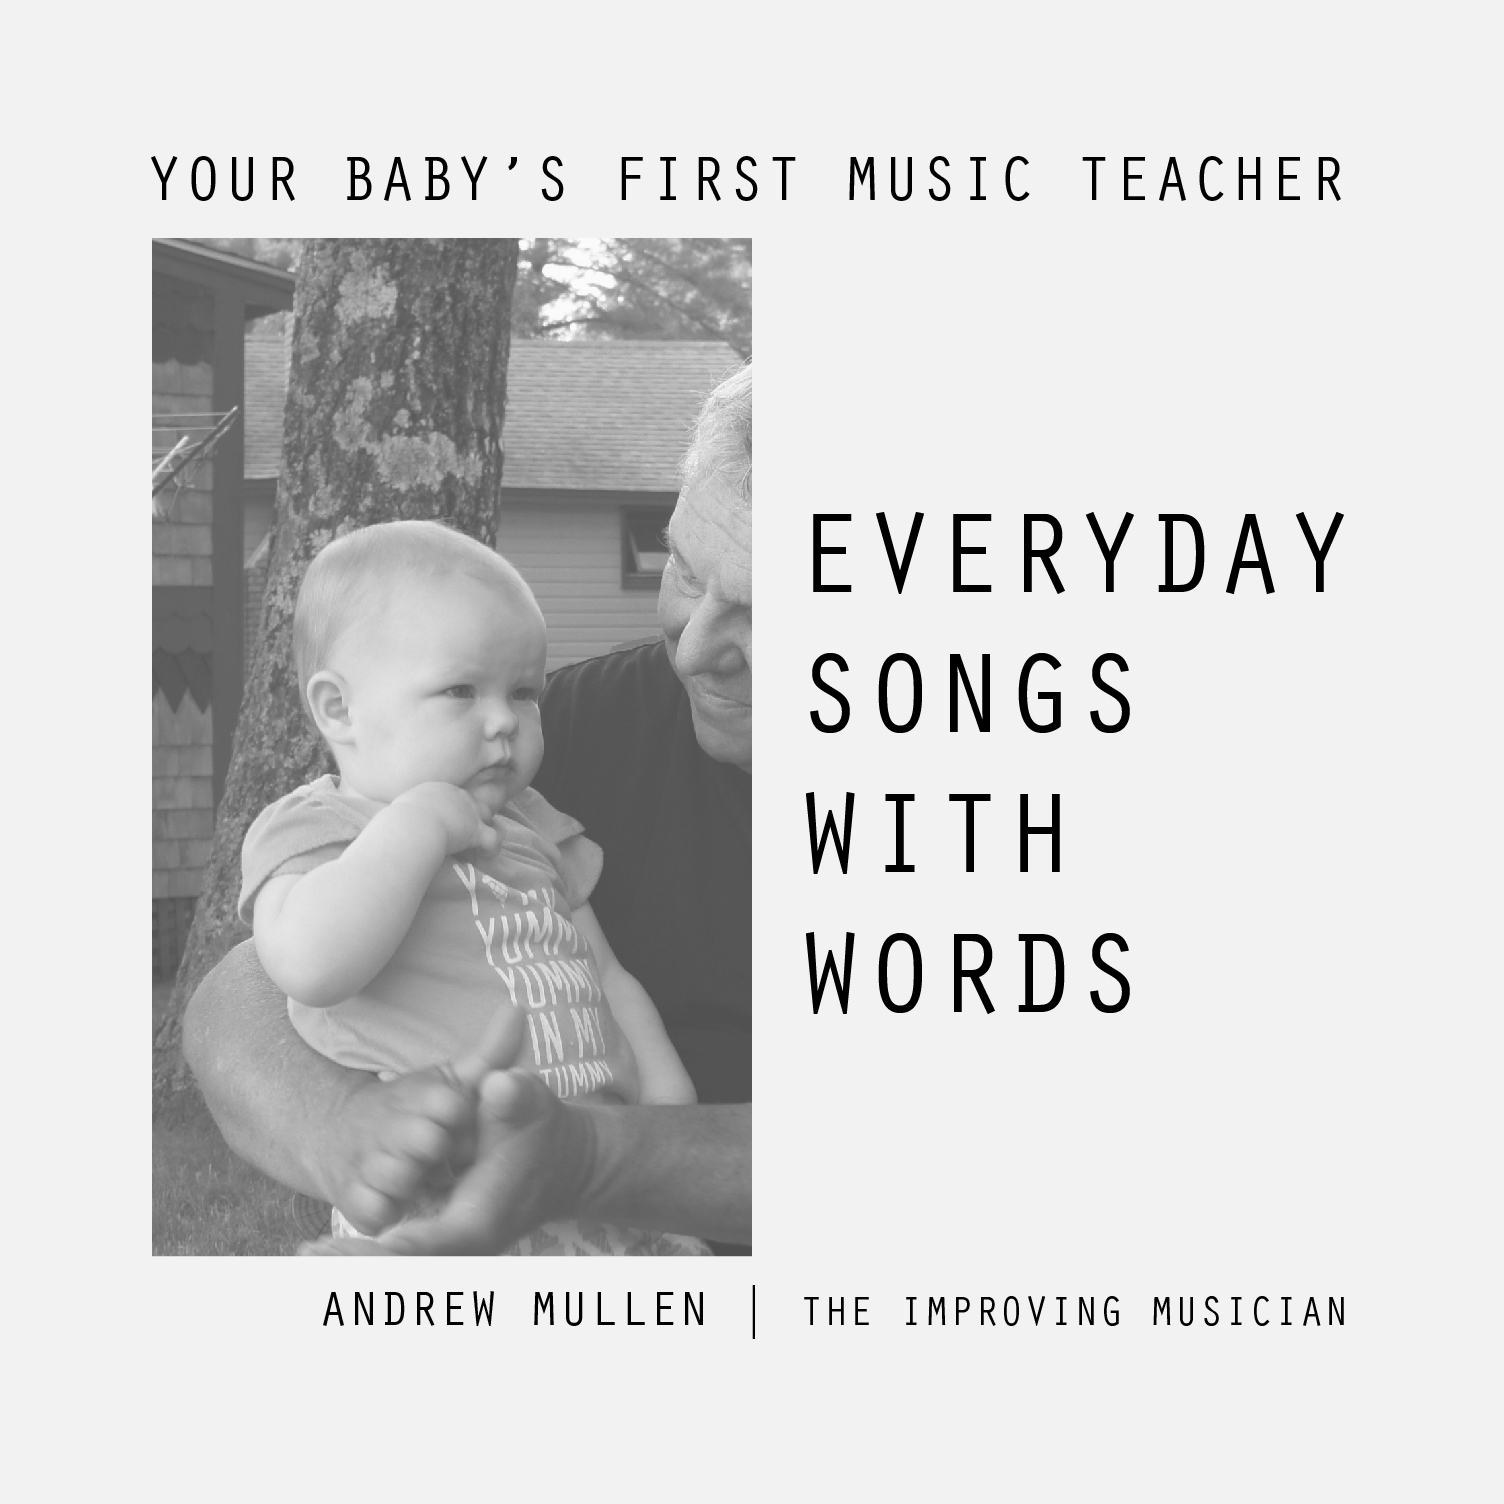 Every Day Songs With Words COVER - MLT-How Do We Learn Music?